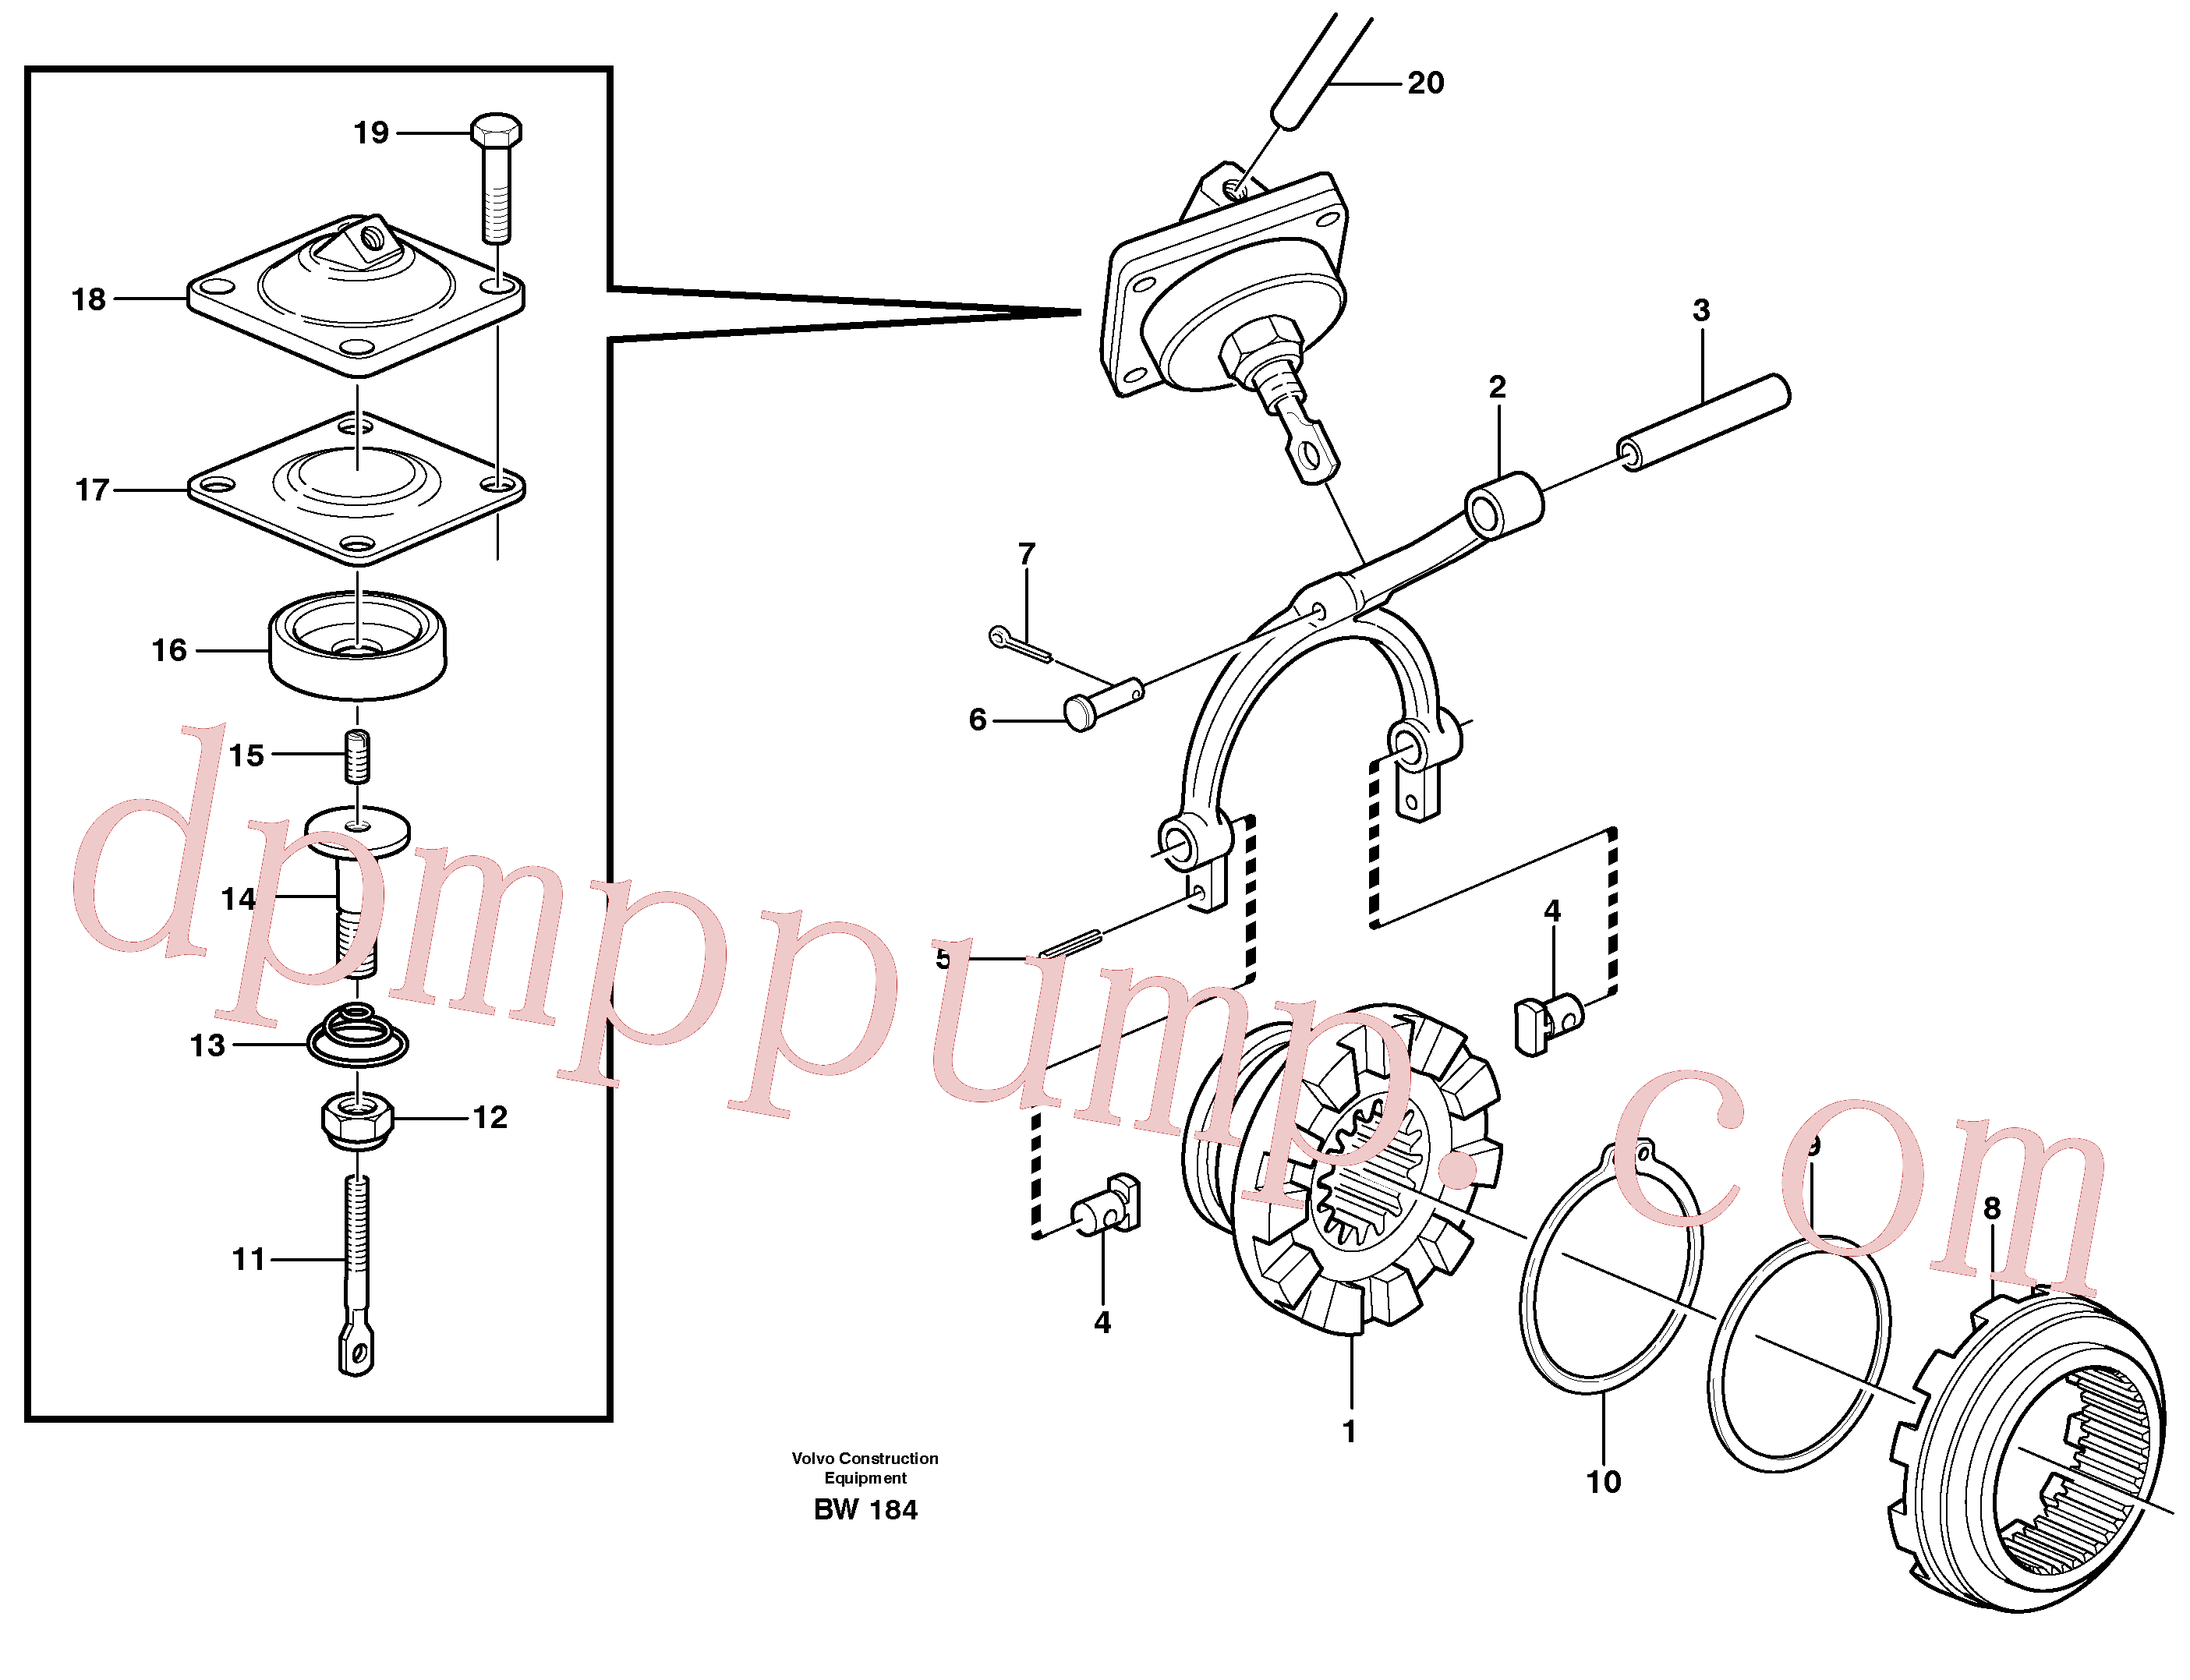 MI964845 for Volvo Differential lock(BW184 assembly)